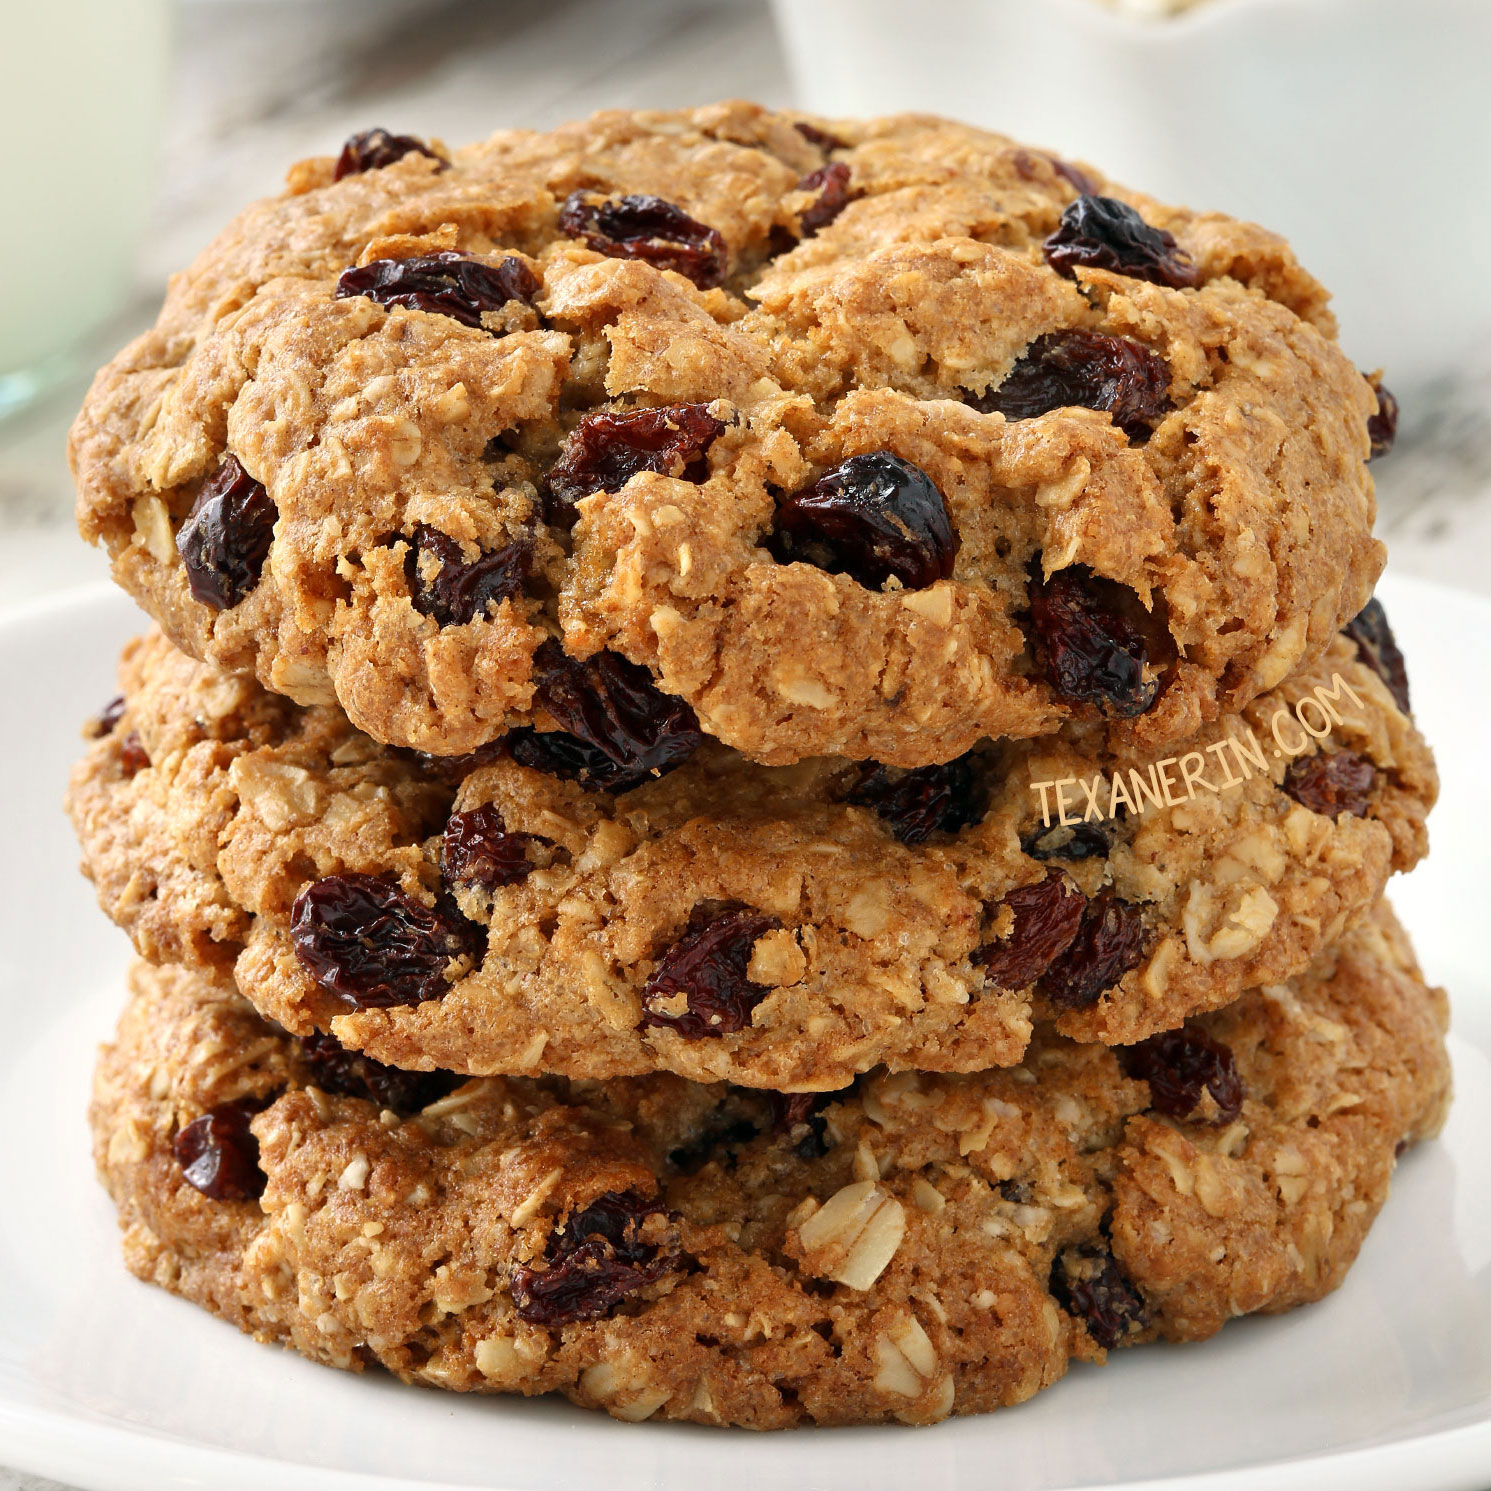 The Best Gluten-free Oatmeal Cookies - Texanerin Baking